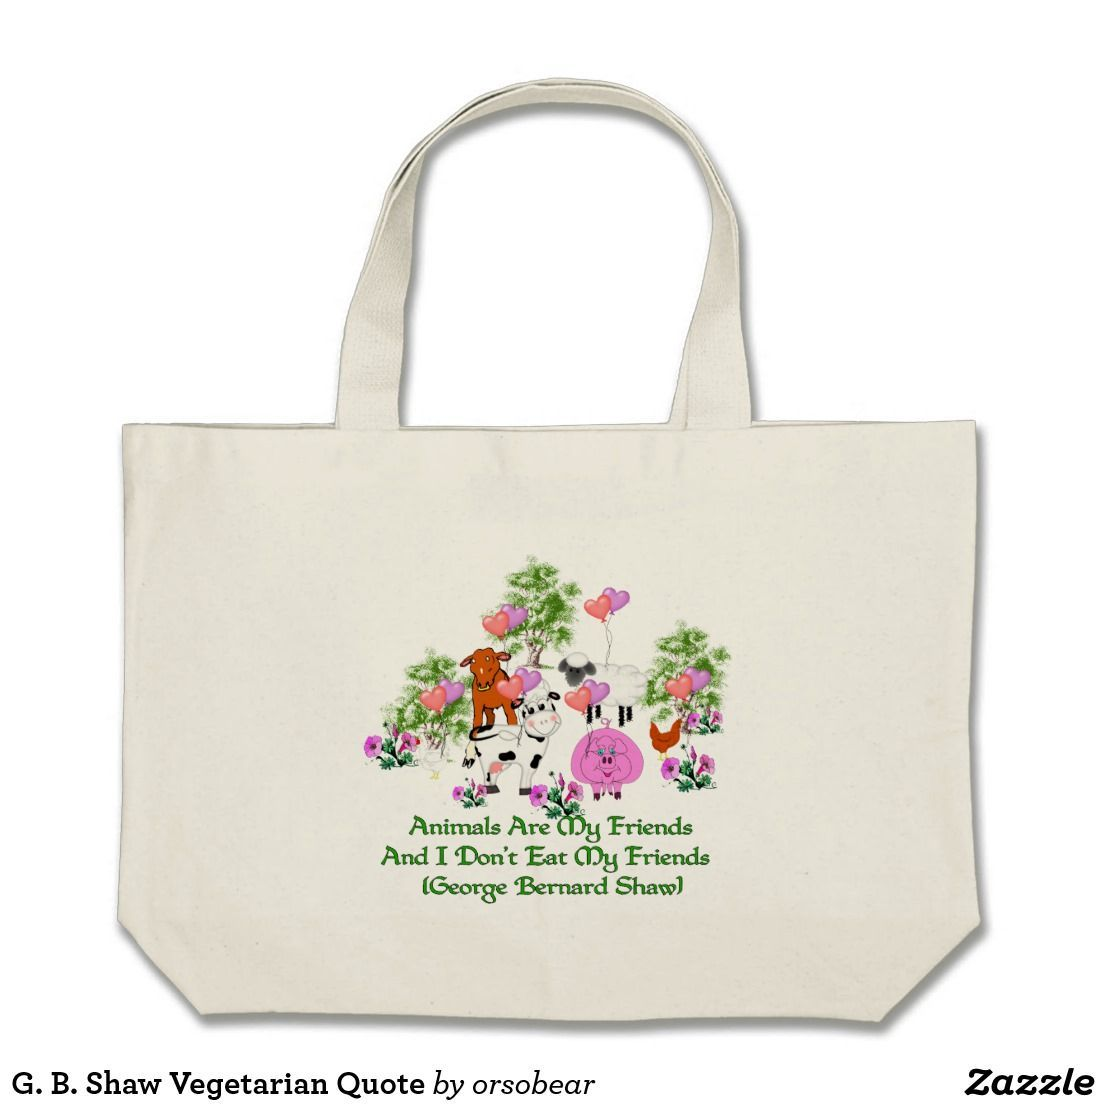 G. B. Shaw Vegetarian Quote Large Tote Bag | Zazzle.com #vegetarianquotes G. B. Shaw Vegetarian Quote #vegetarianquotes